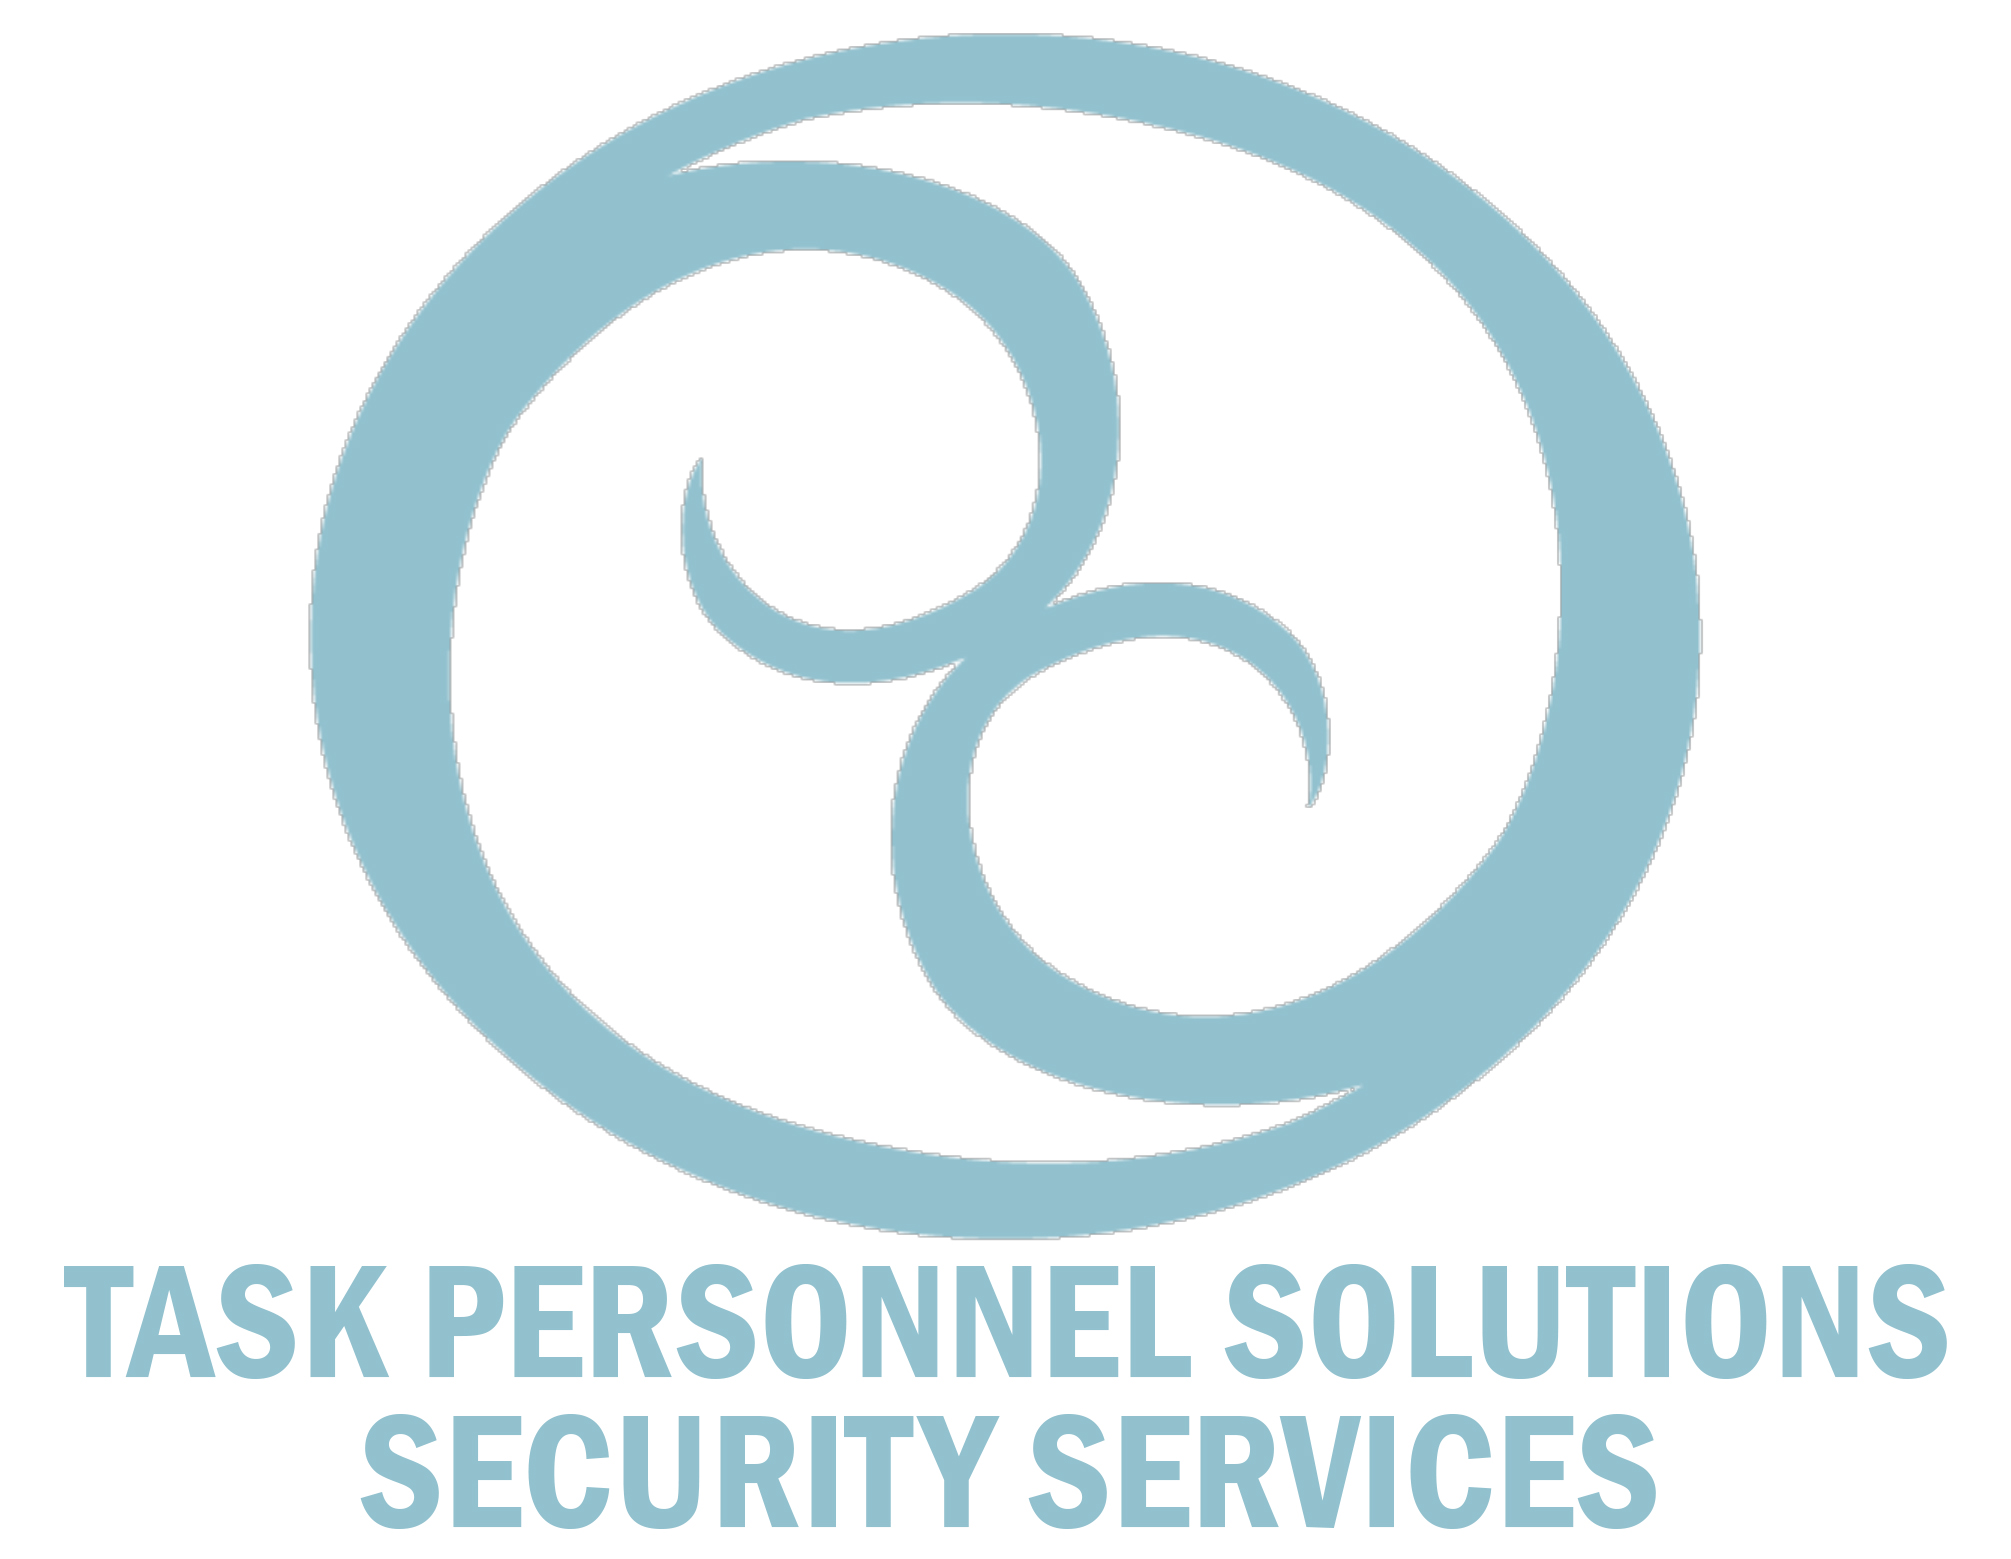 Task Personnel Solutions